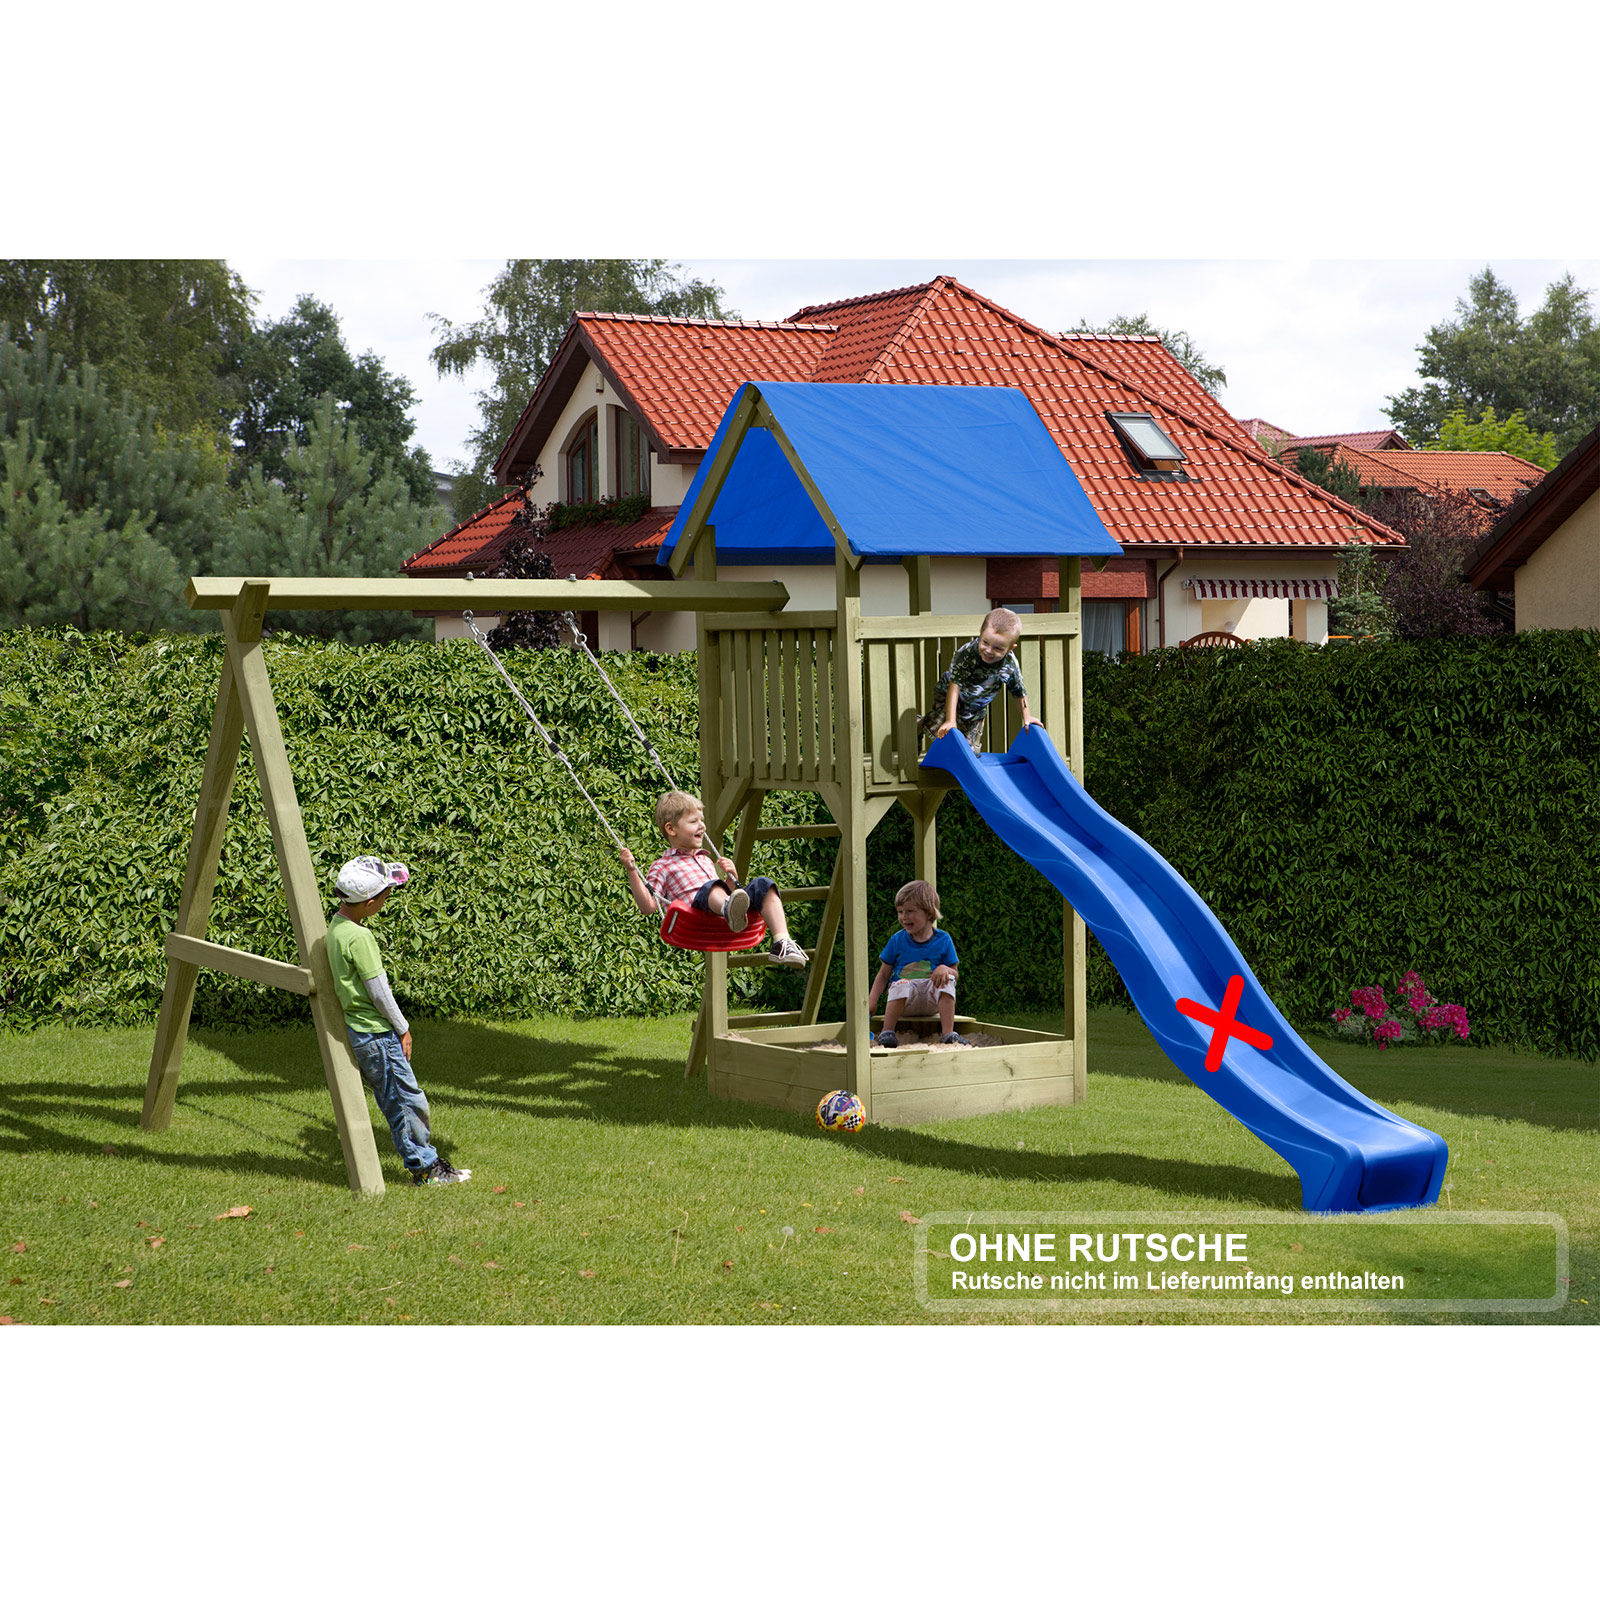 gartenpirat spielturm premium s mit schaukel und sandkasten rutsche optional ebay. Black Bedroom Furniture Sets. Home Design Ideas